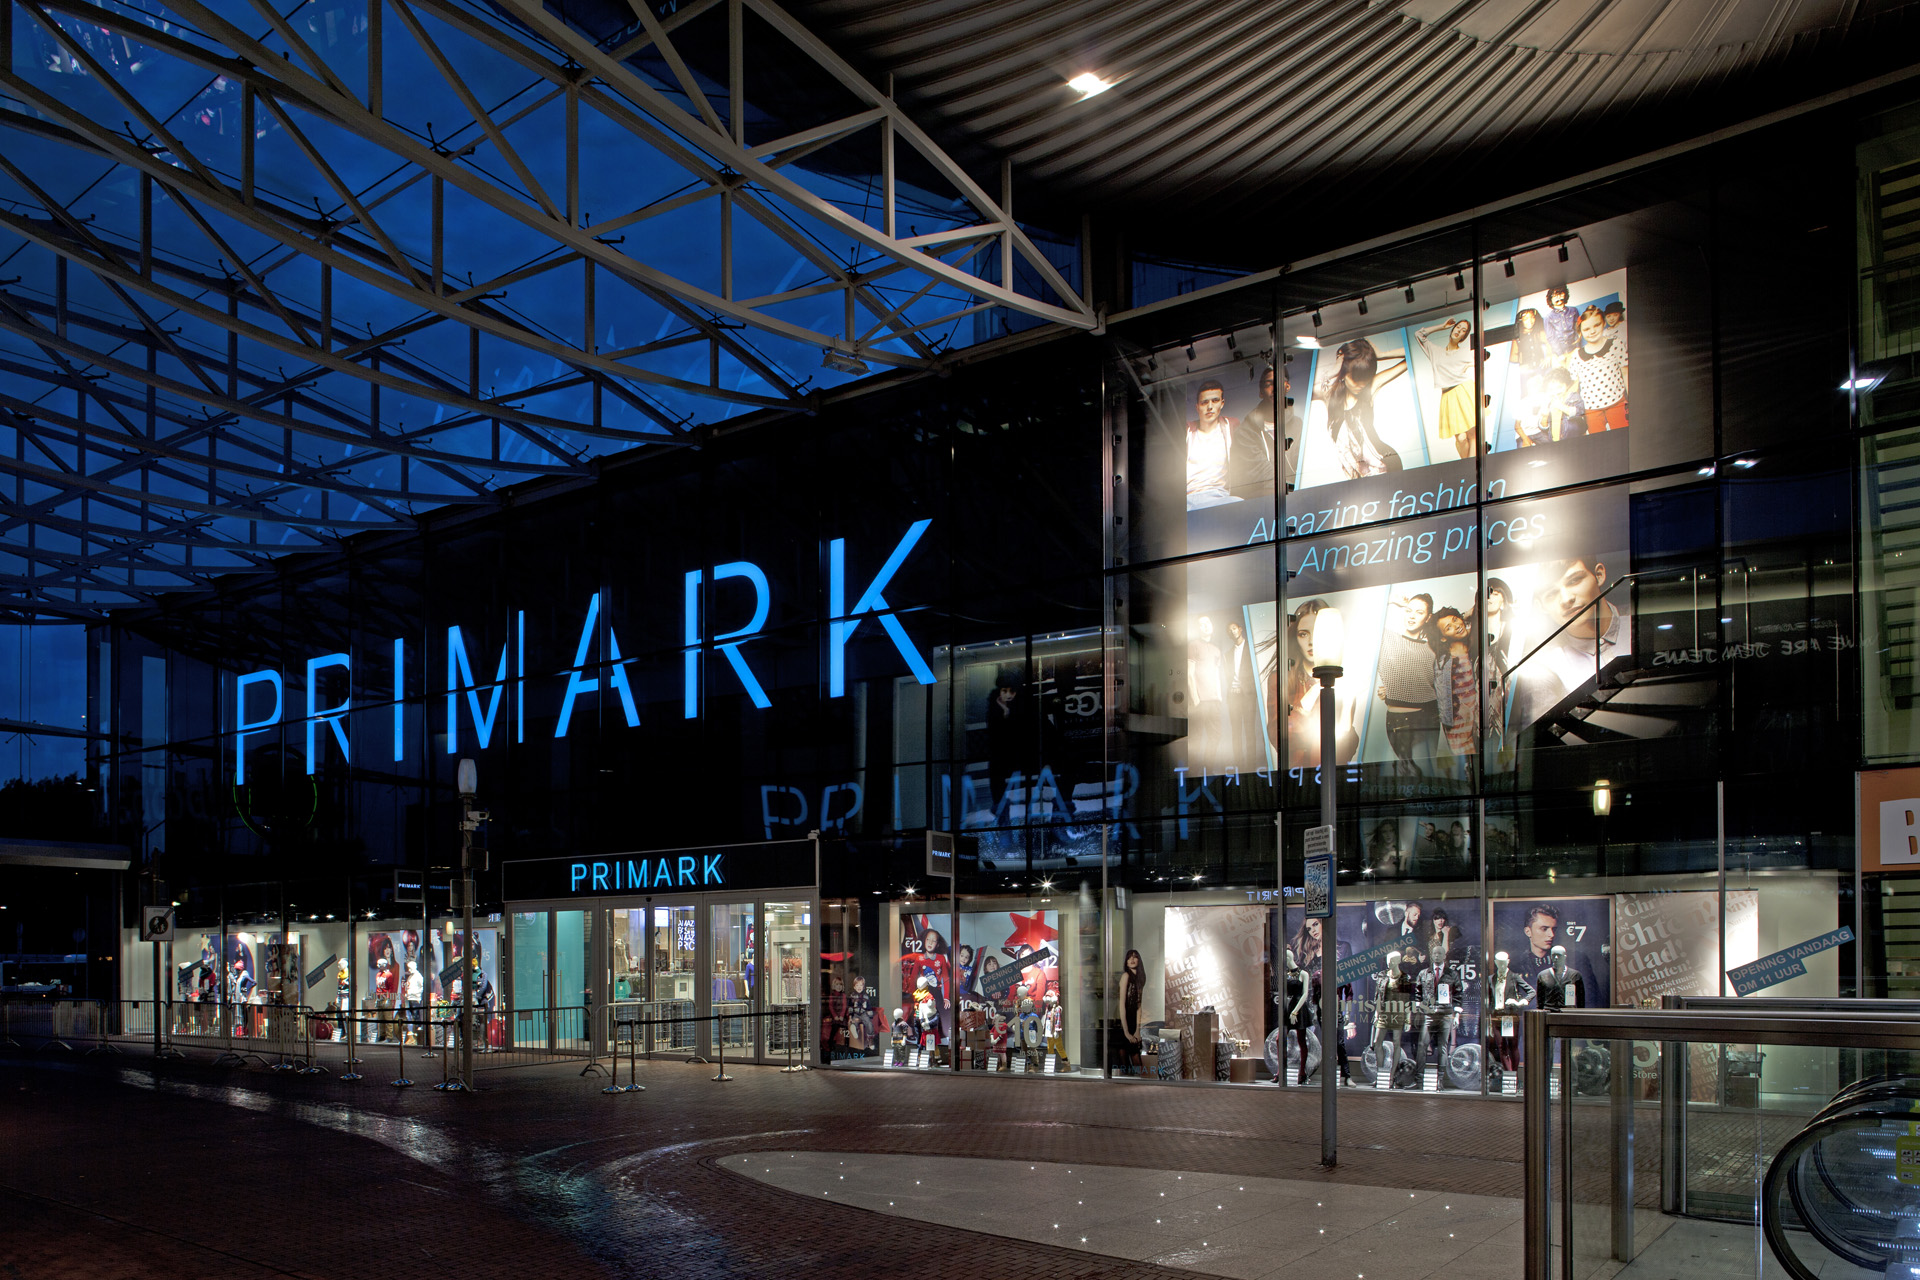 Primark Amersfoort 10 World Famous Fashion Labels We Need In Singapore Right Now